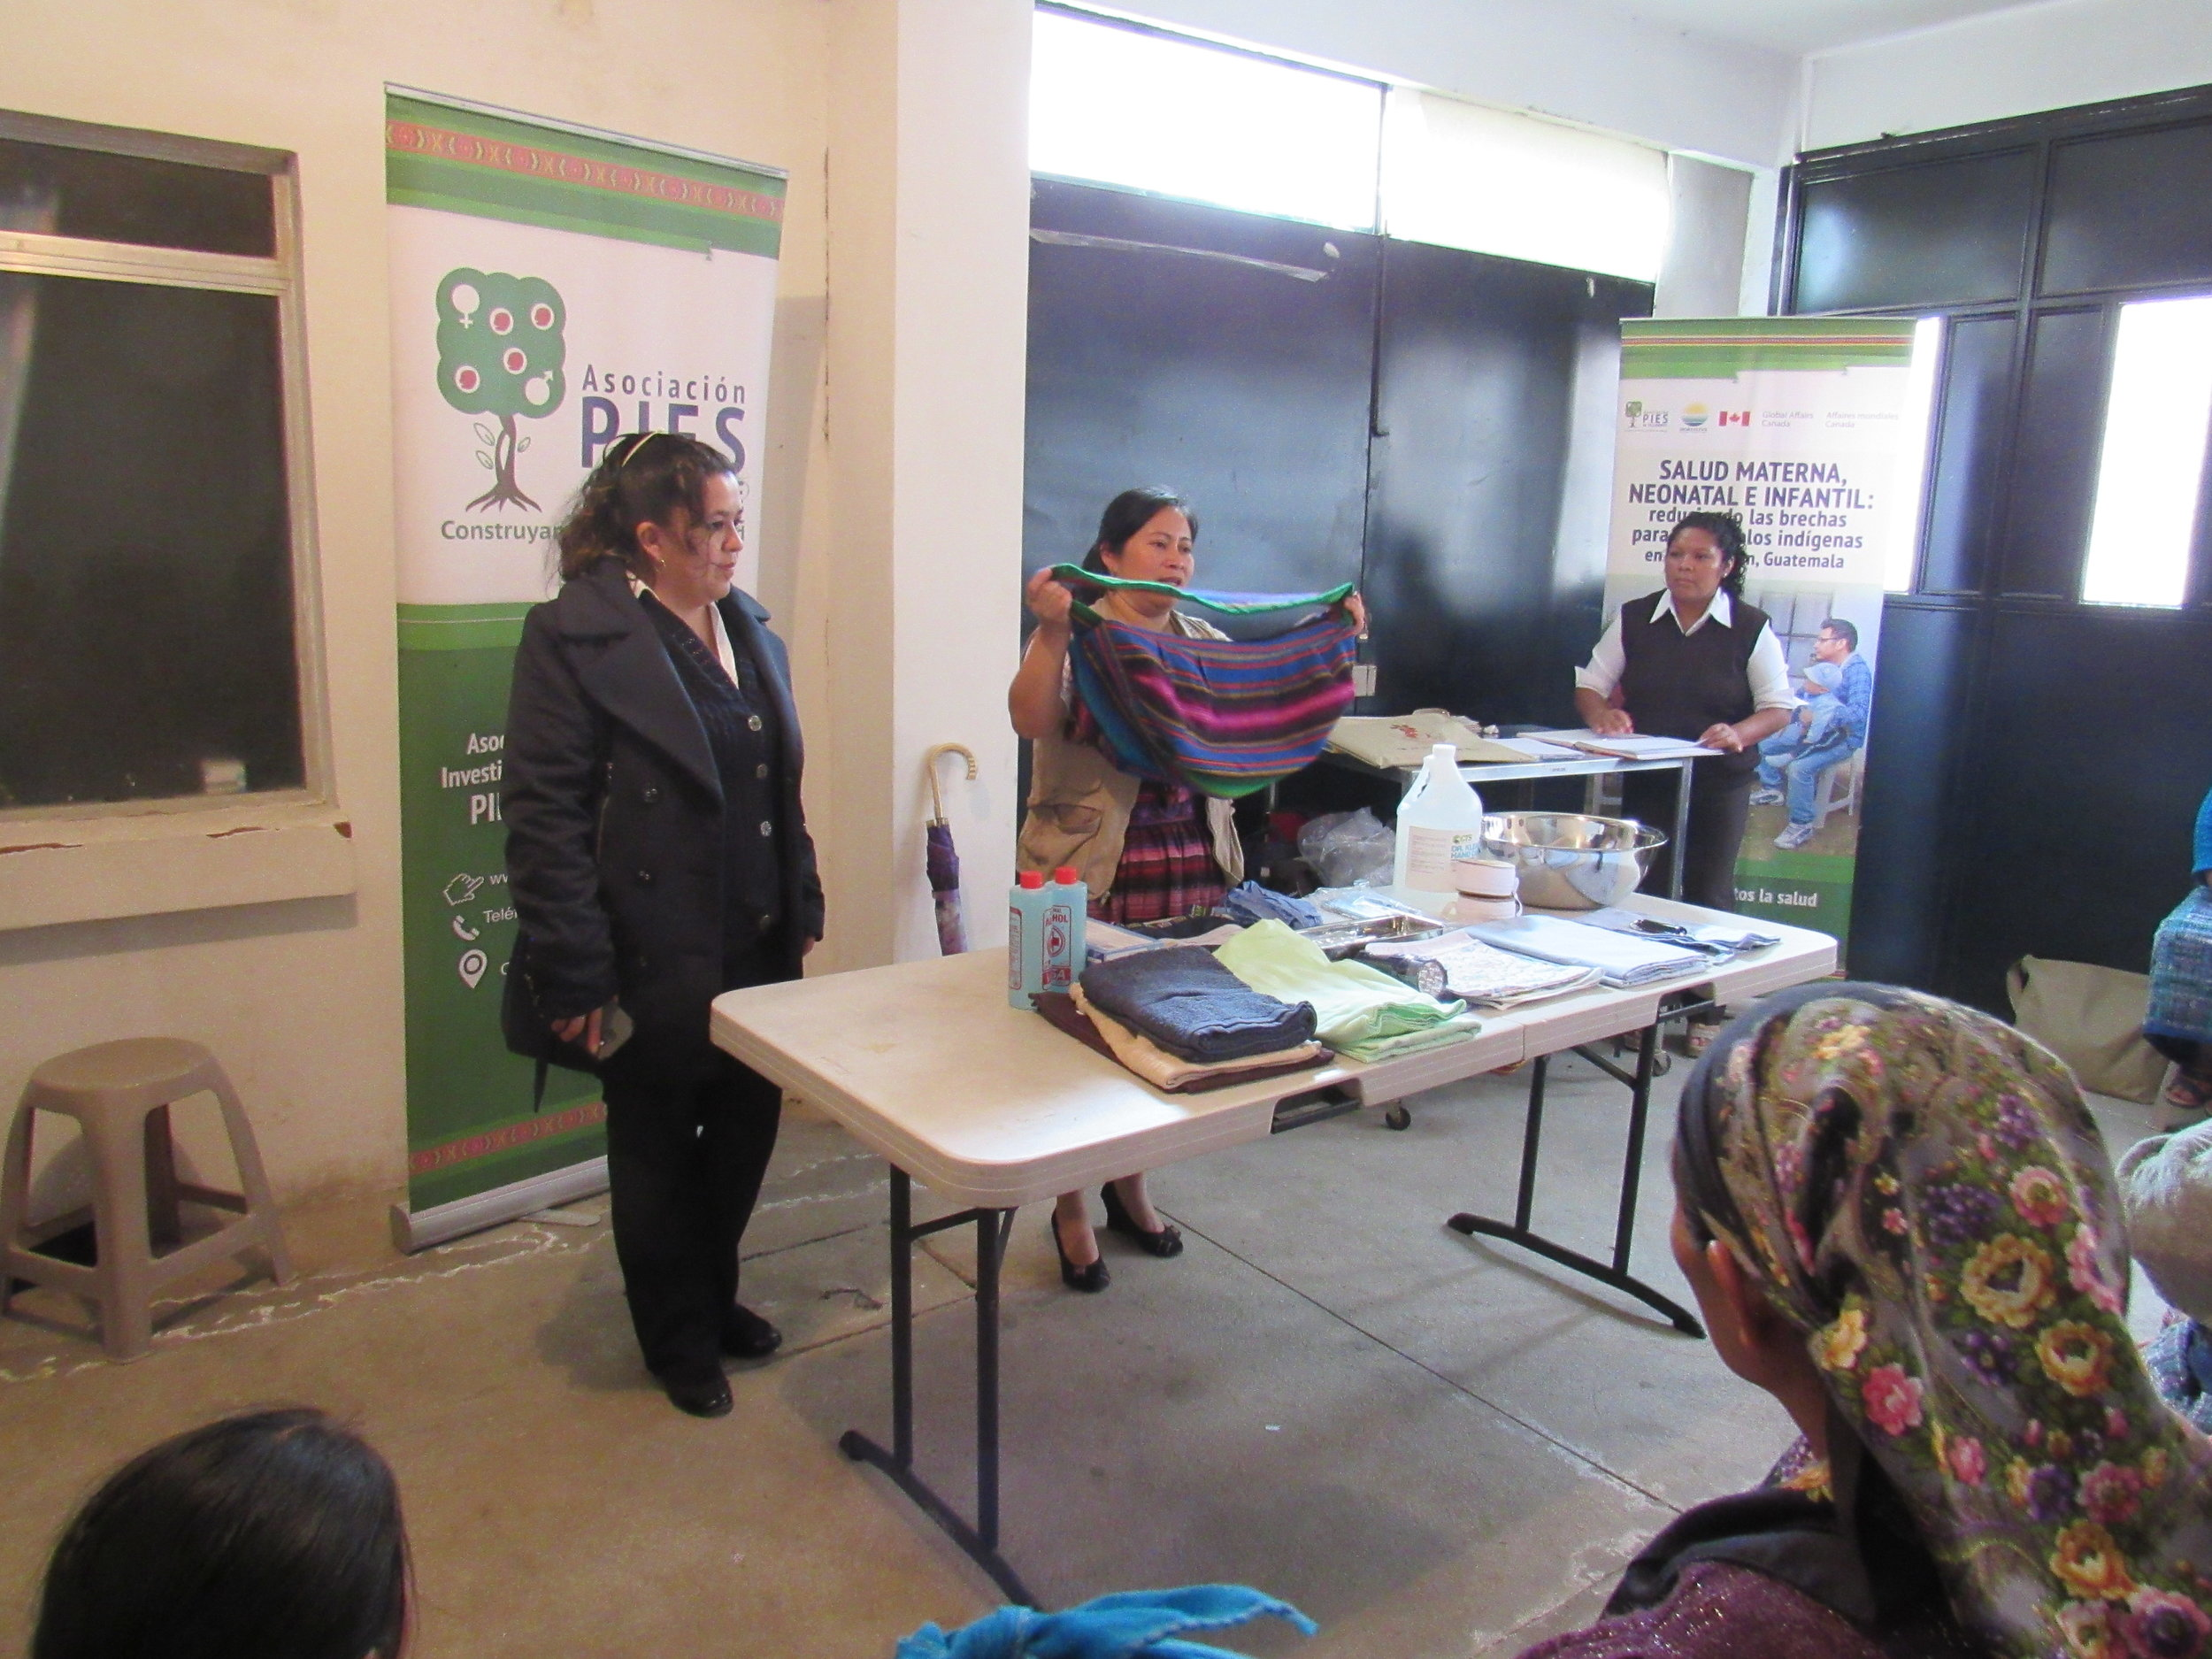 Lead trainers teach groups of midwifes how to use their equipment for safe, clean, deliveries.